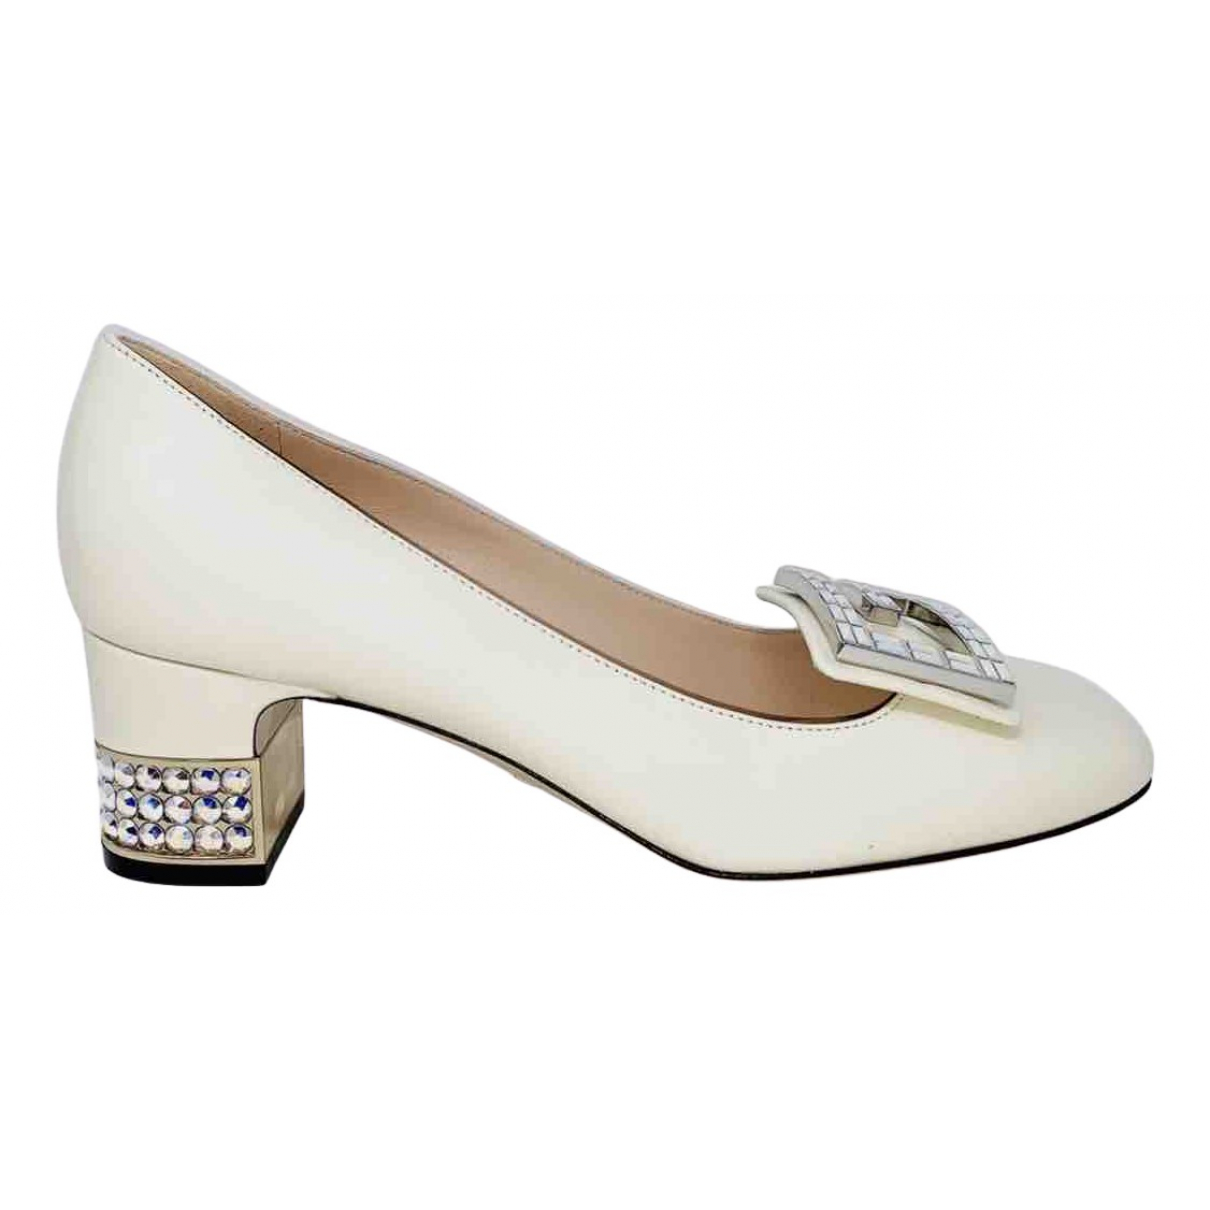 Gucci Malaga White Leather Heels for Women 36 IT